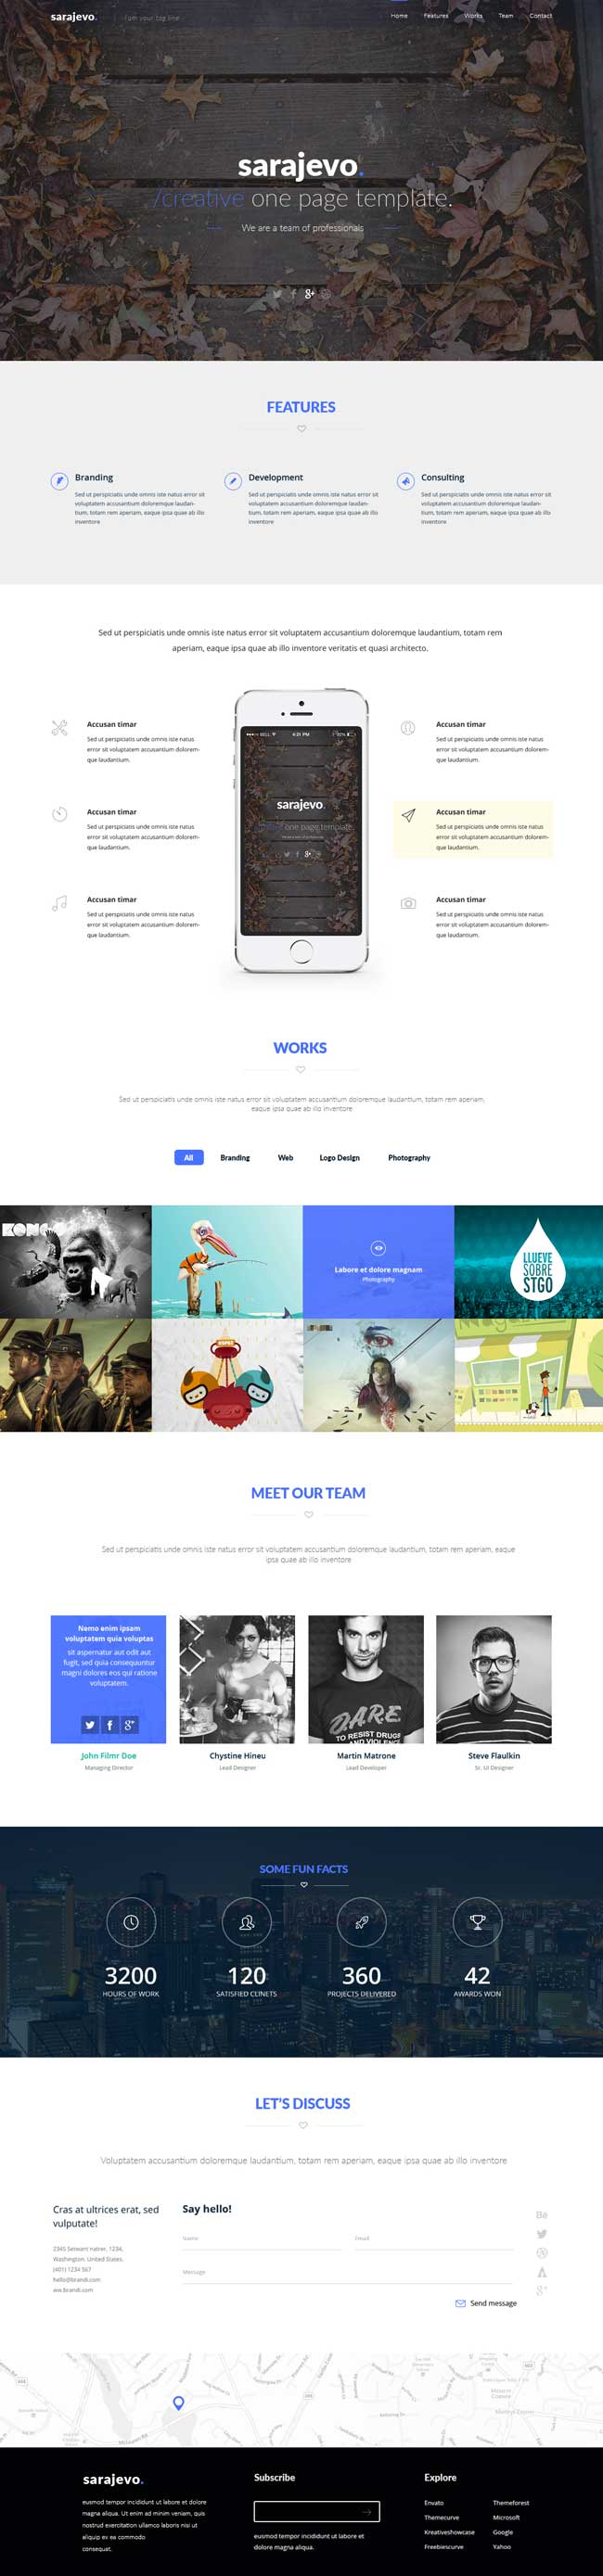 Sarajevo - Free Clean Landing Page PSD Template | Free download